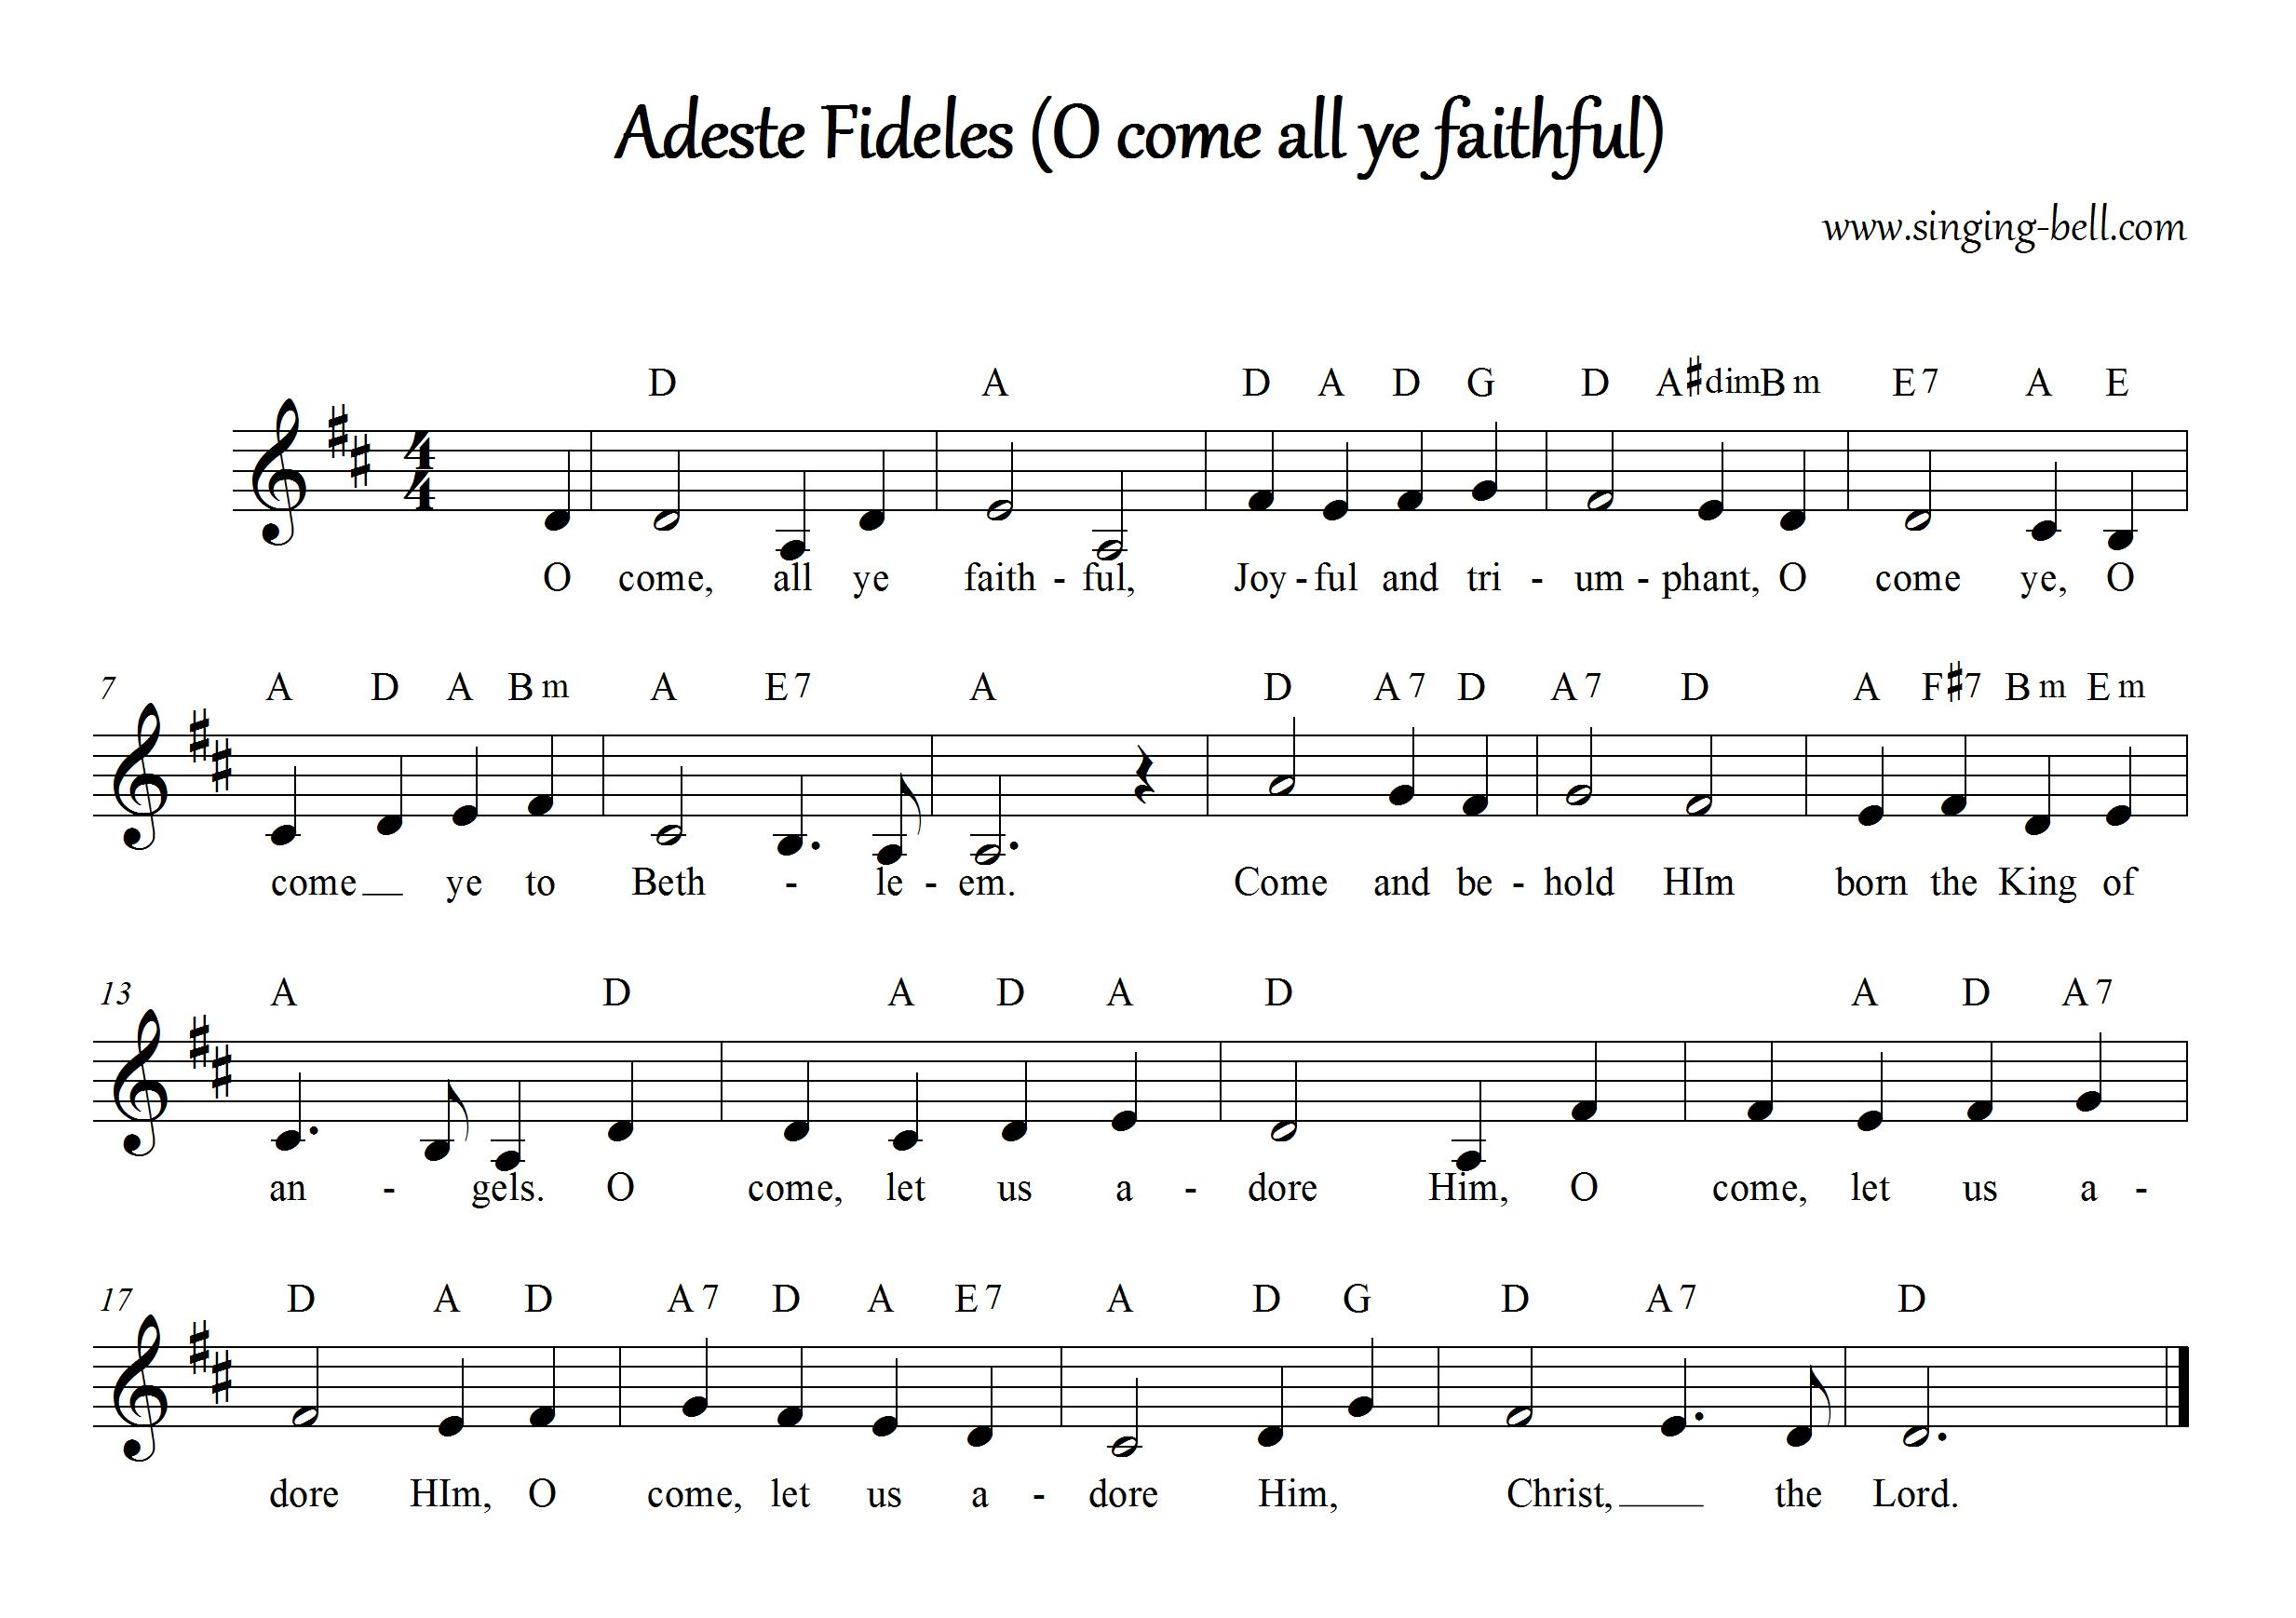 O Come All Ye Faithful (Adeste Fideles) - Christmas Music Score (in D)